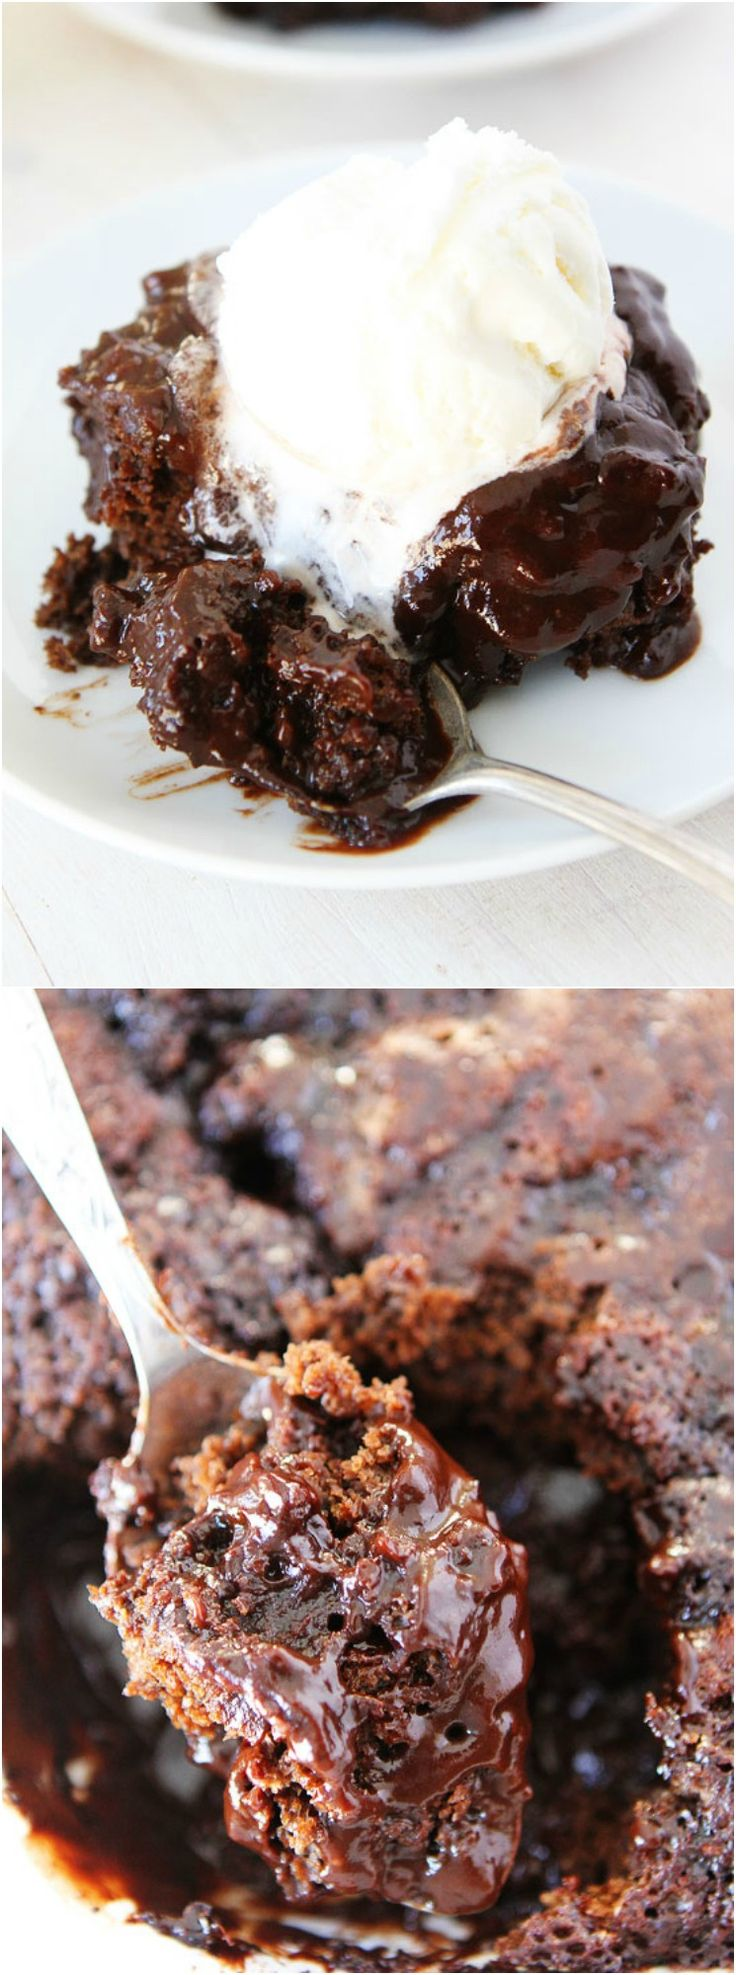 Chocolate Pudding Cake Recipe on twopeasandtheirpod.com This decadent chocolate cake is so easy to make! It is a favorite dessert at our house!